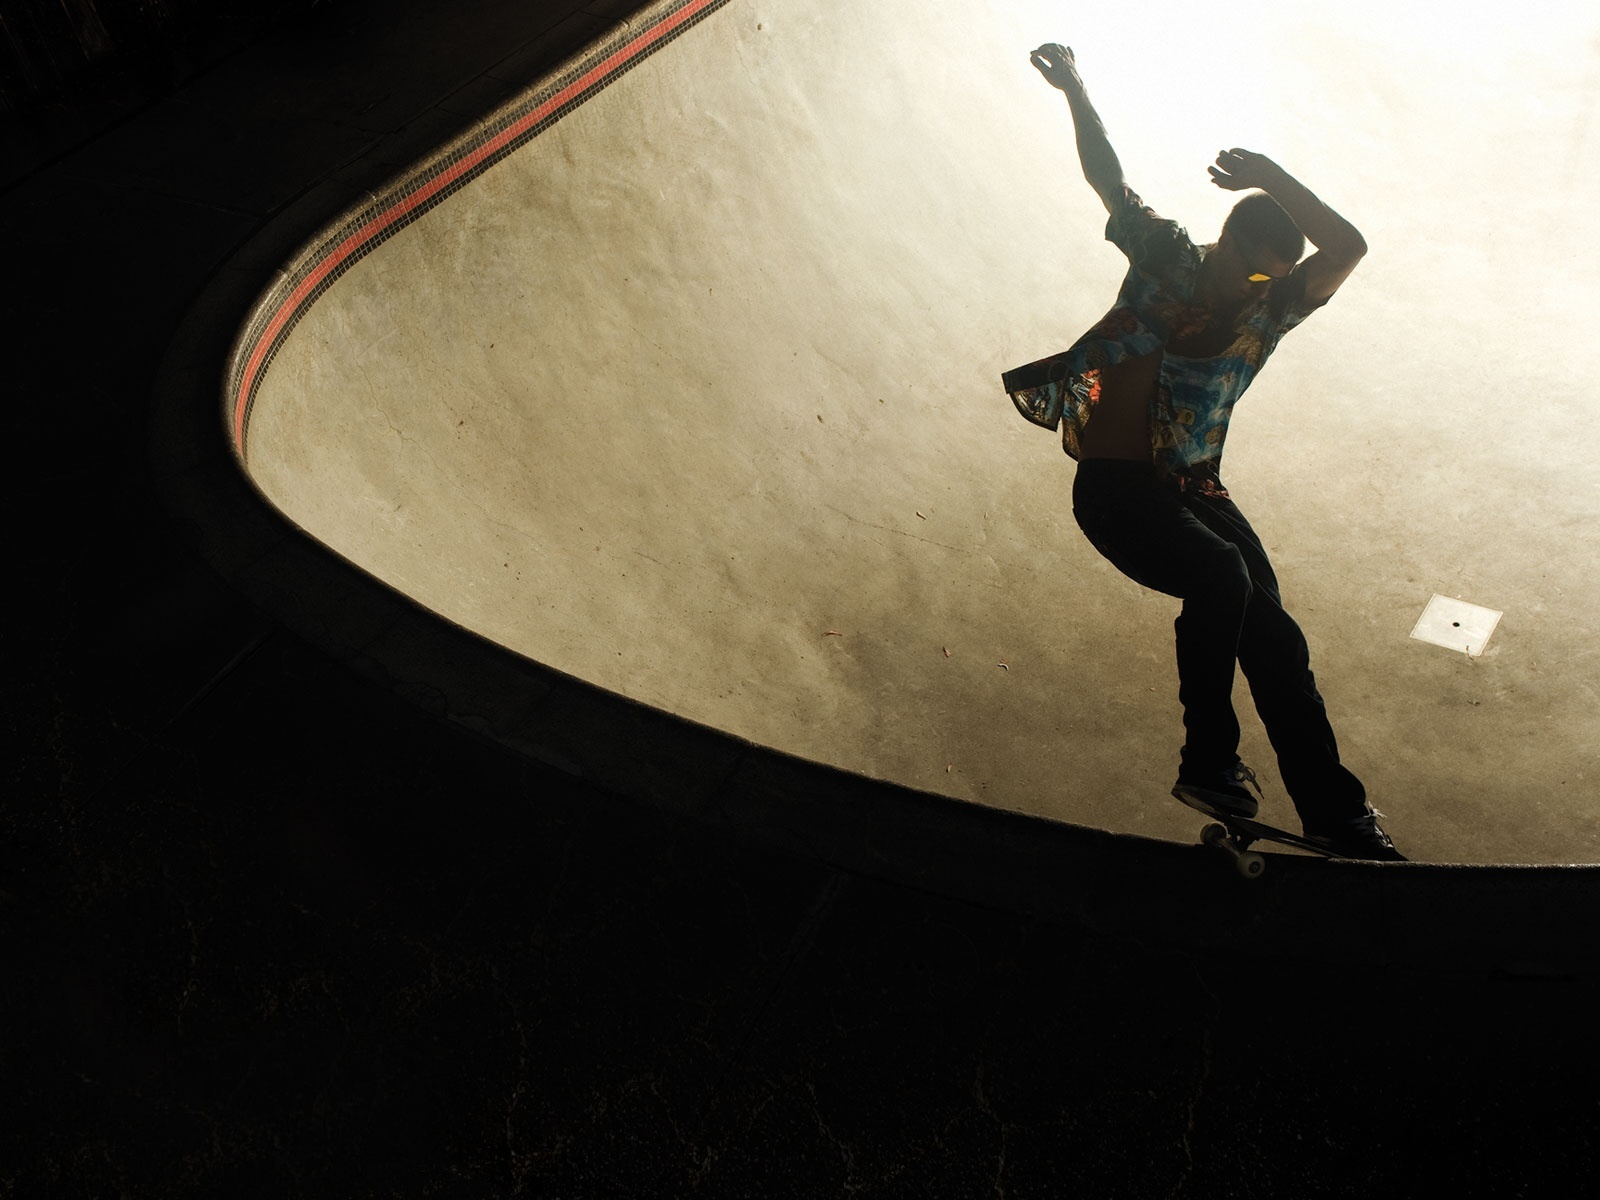 SKATEBOARDING Sports wallpapers download 1600x1200